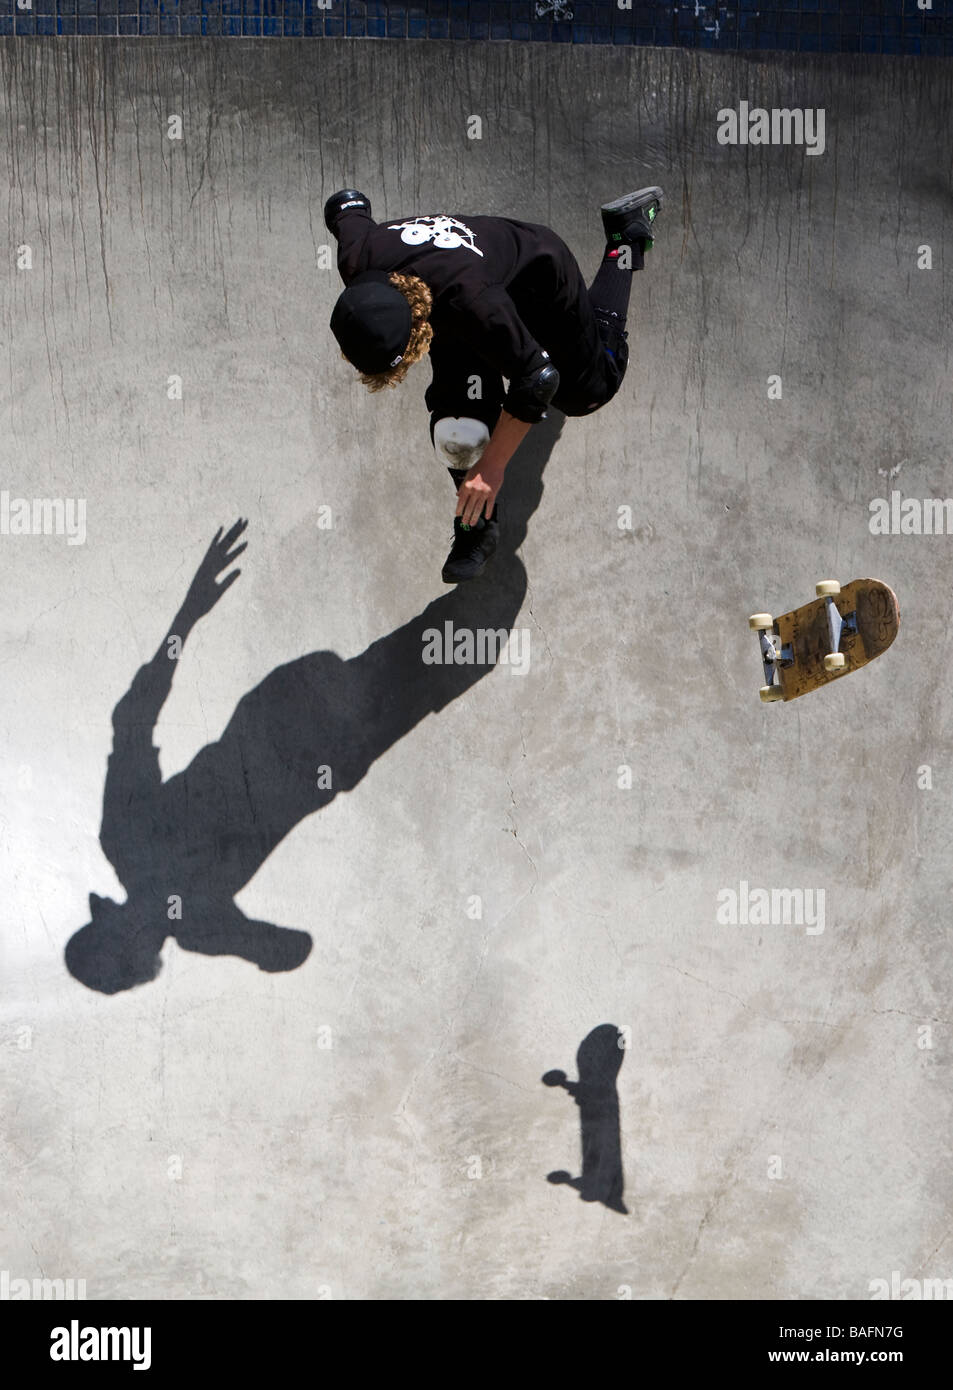 Skateboarder machen Tricks Culver City Skateboard Park Culver City Los Angeles County California Vereinigten Staaten Stockfoto